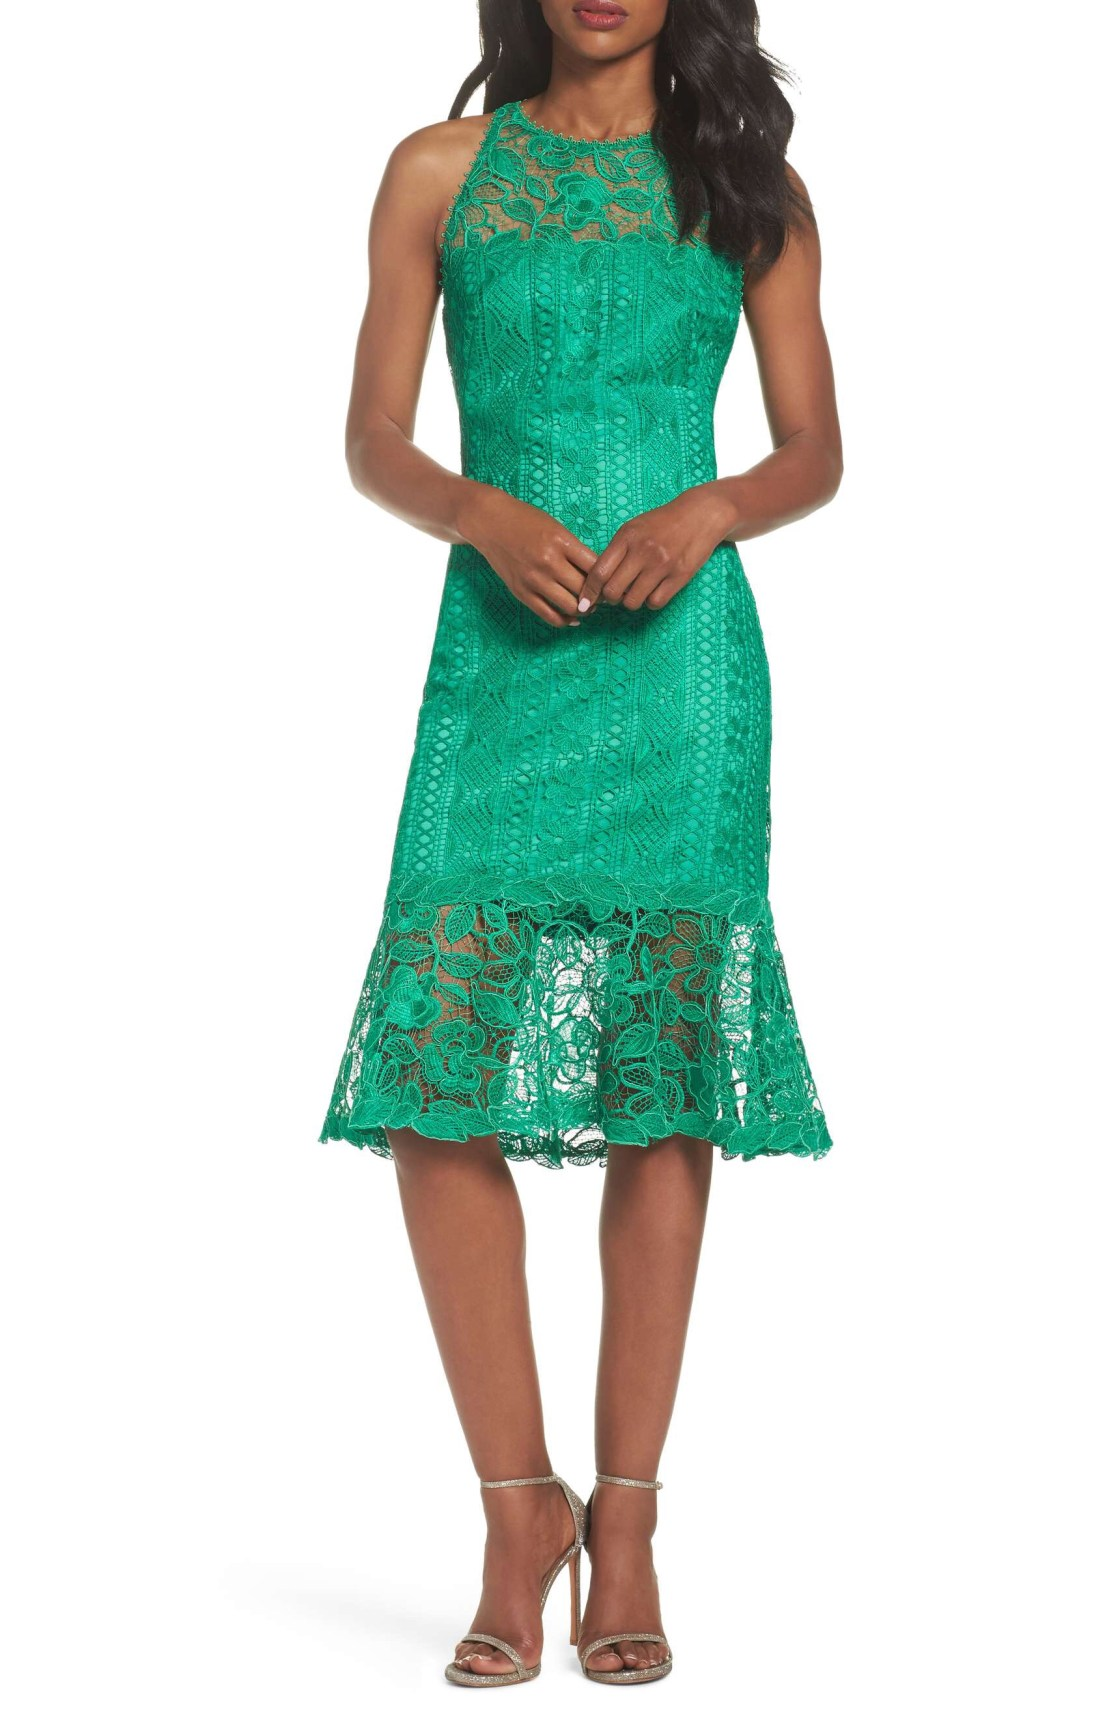 What to Wear to a Wedding: Mother of the Bride/Groom - Style by Karen